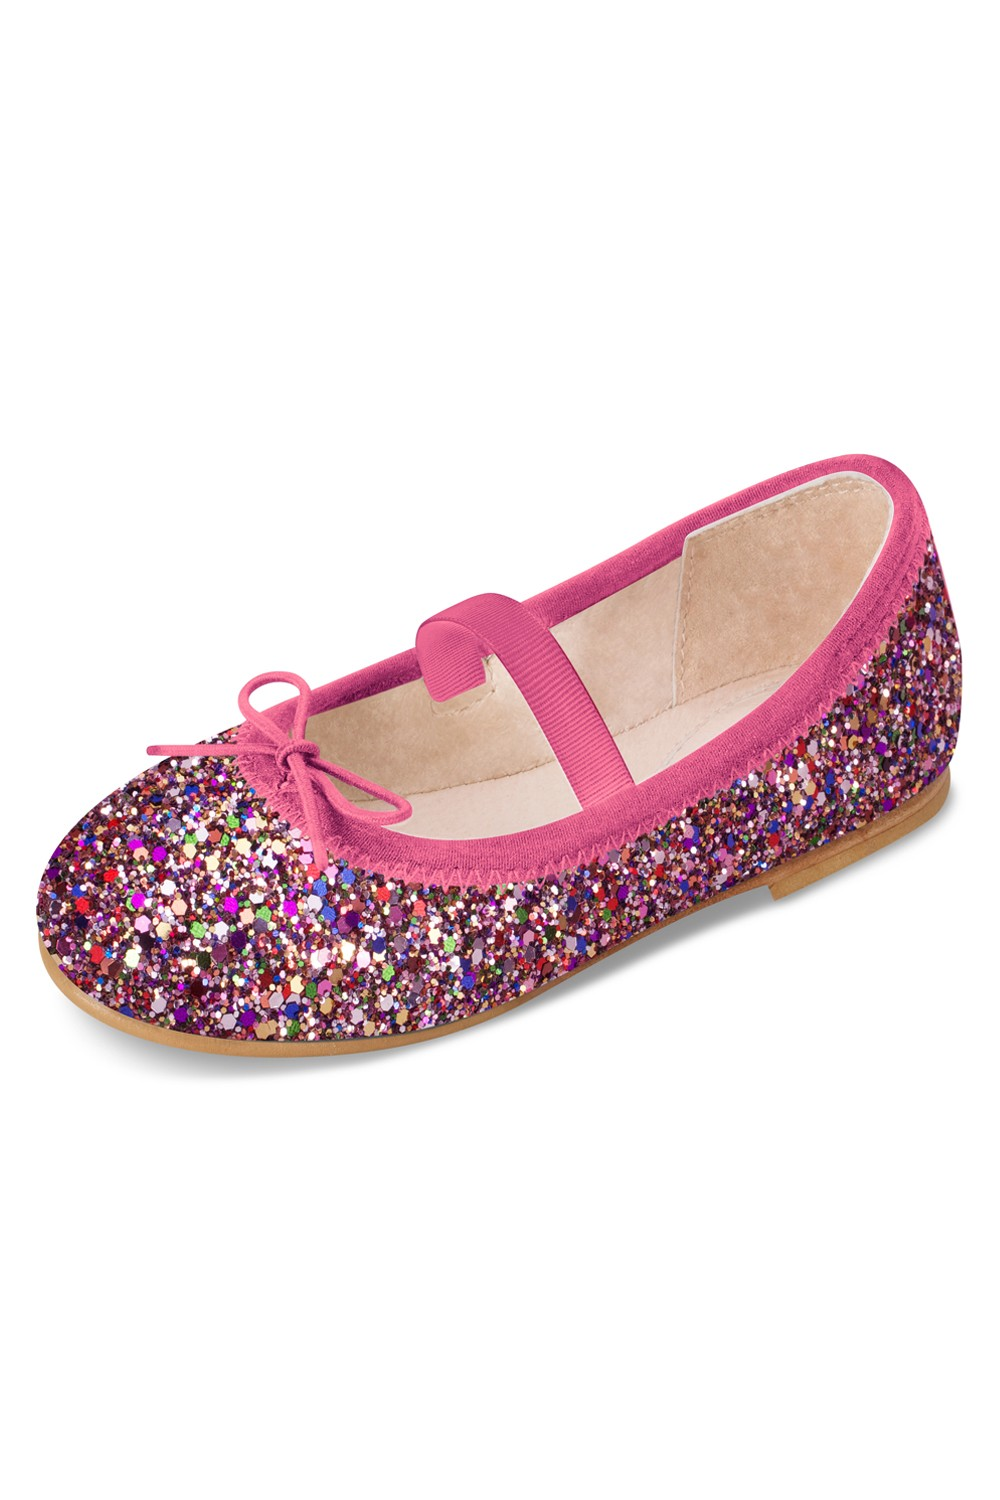 Sparkle - Toddler Toddlers Fashion Shoes